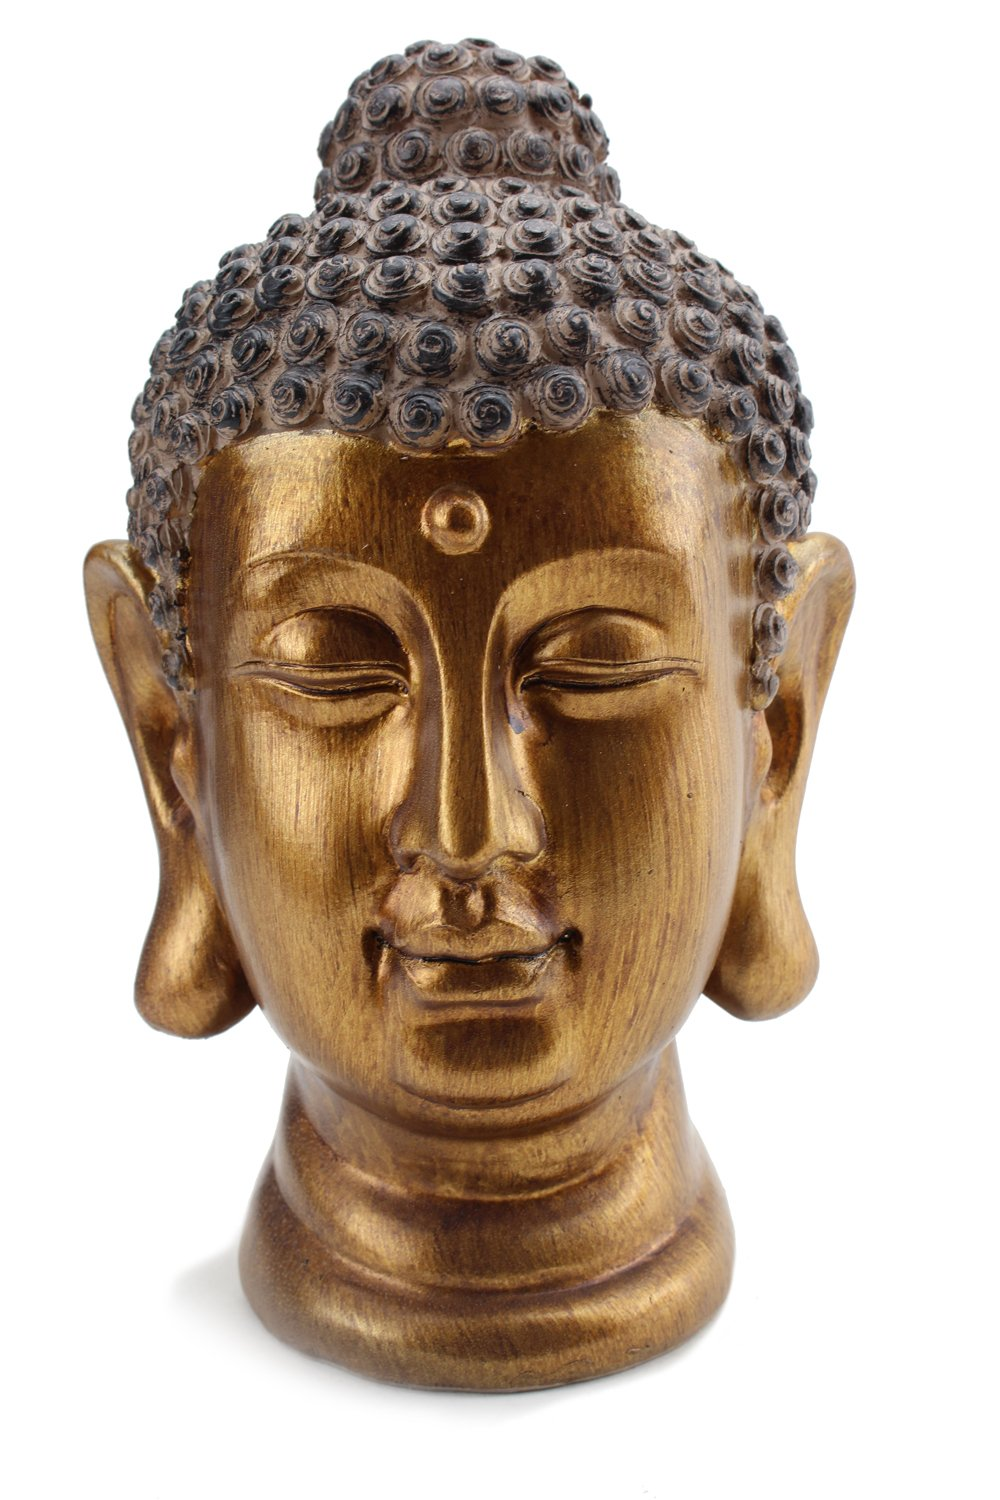 Smiling Meditating Buddha Shakyamuni Head Statue 8'' Tall Blessing Mercy & Love Peaceful (G16632) Feng Shui Idea - We Pay Your Sales Tax